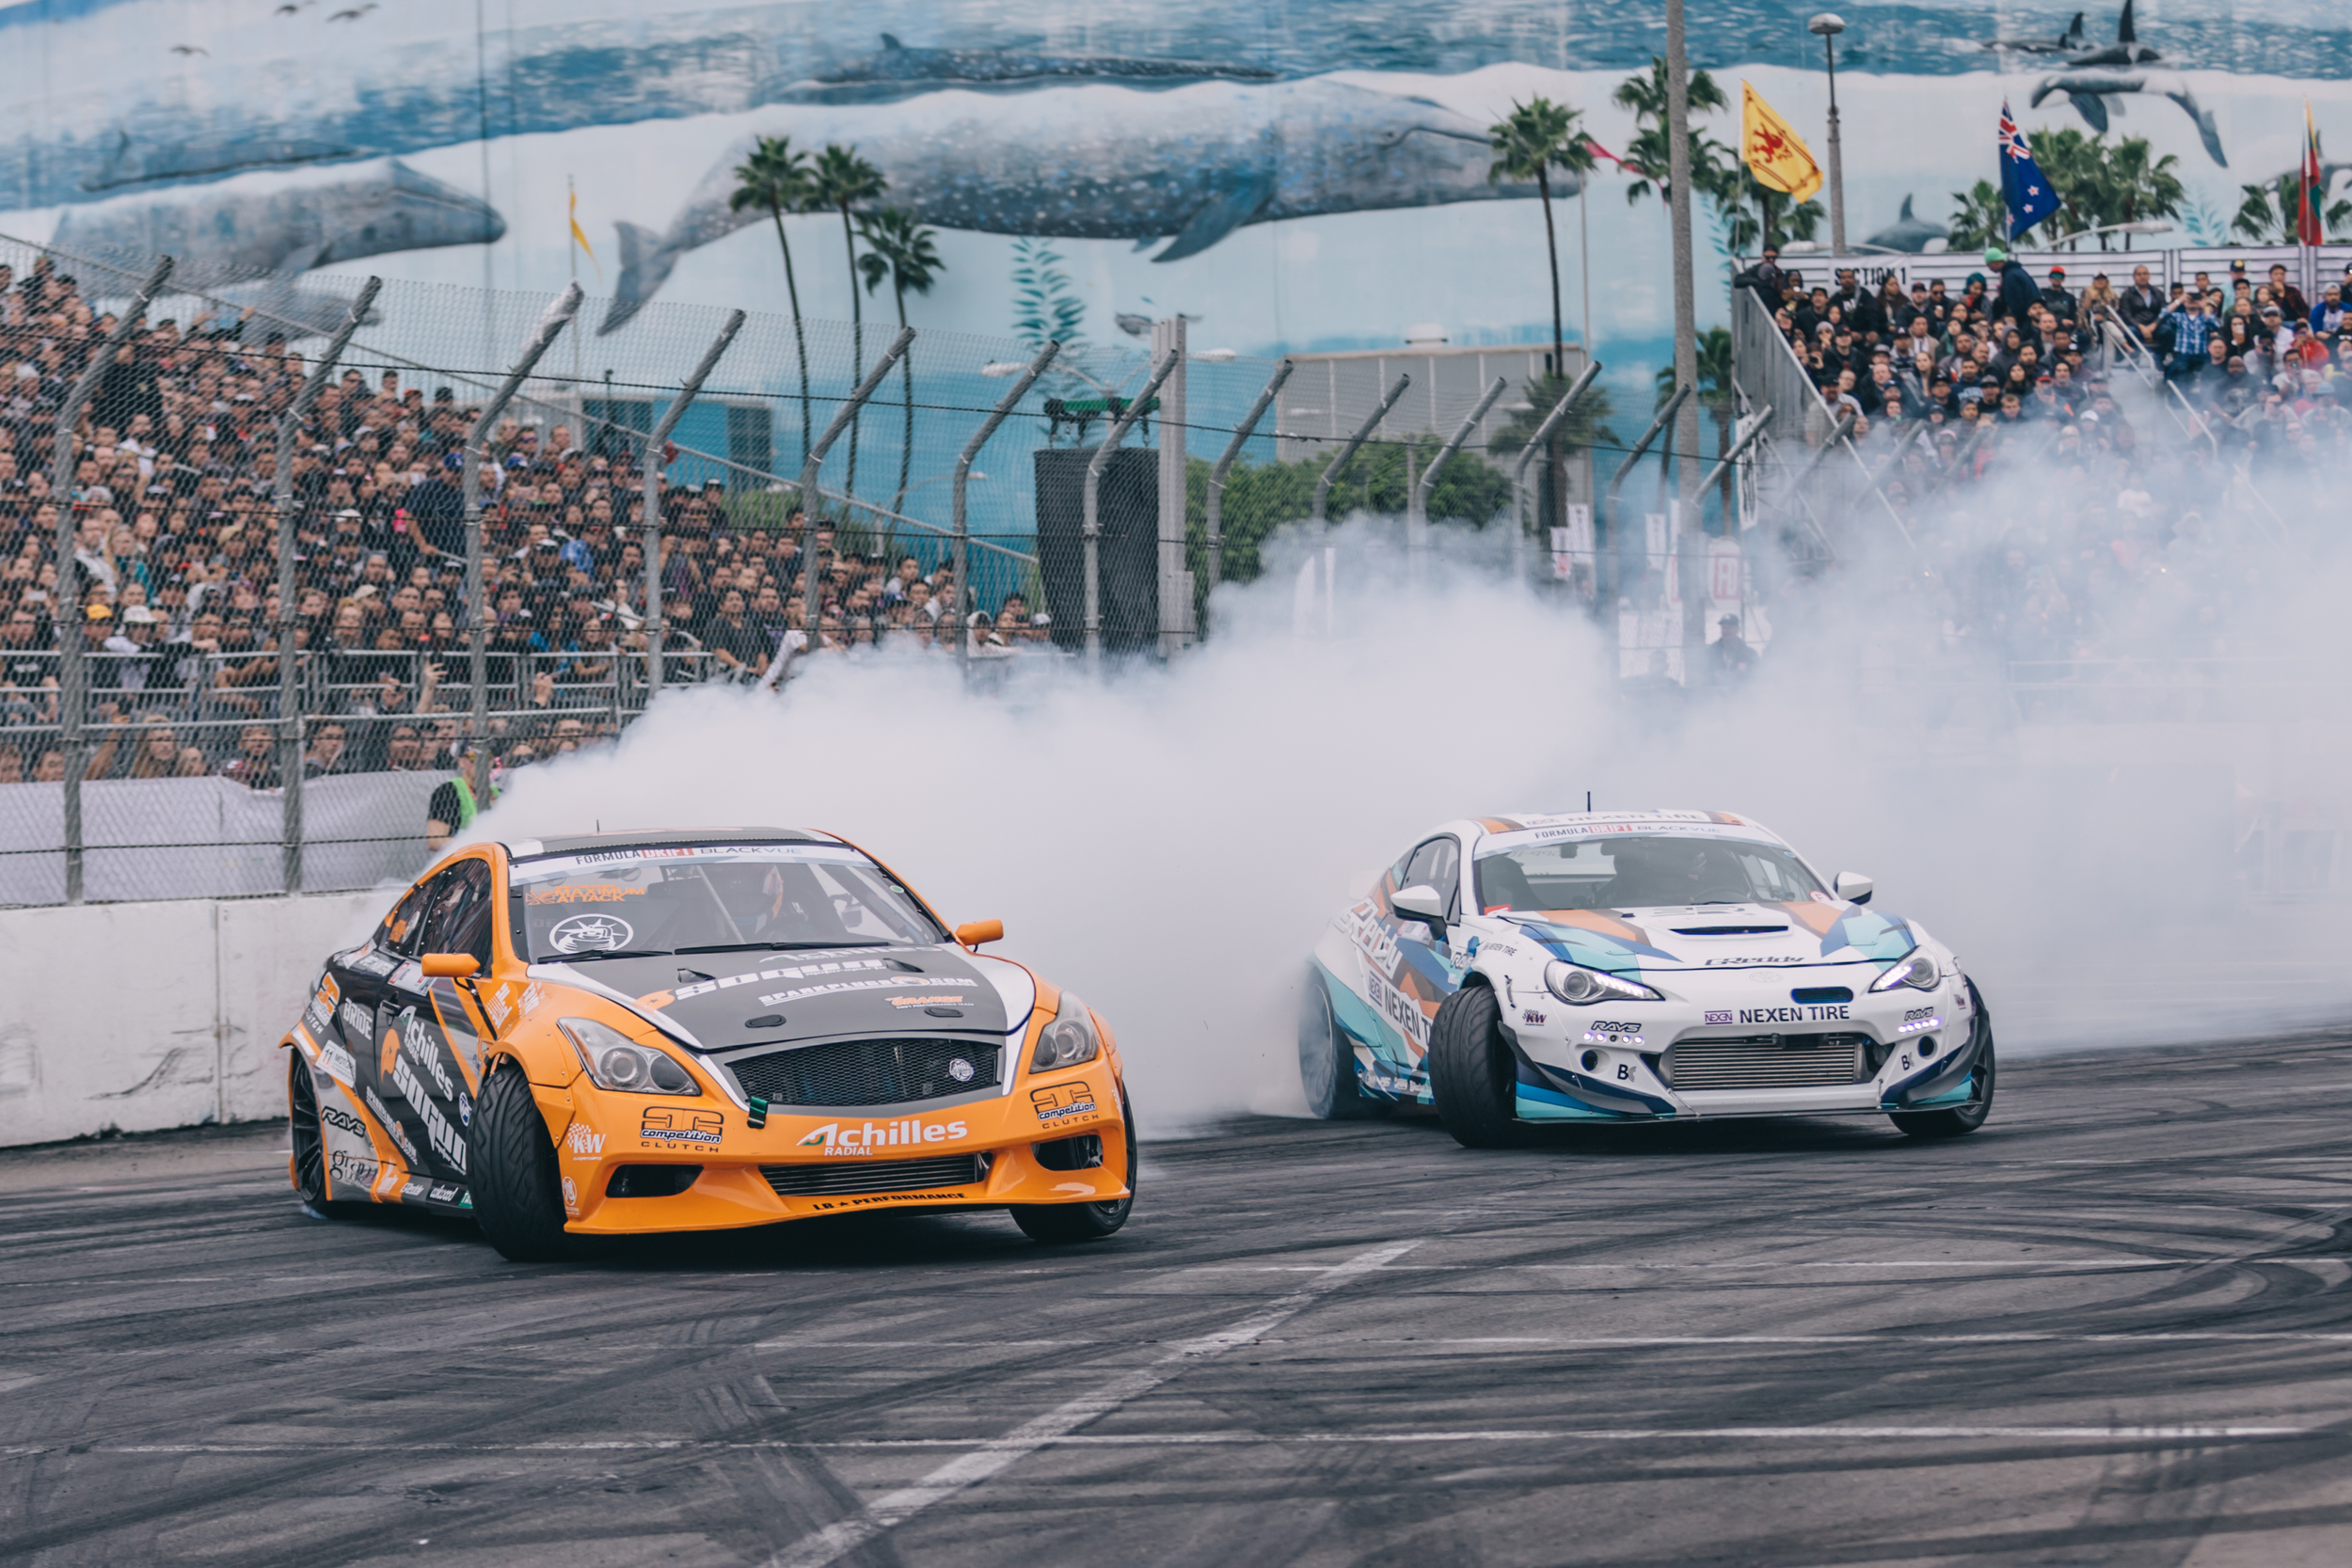 Charles Ng in the Infiniti G37 Liberty Walk (left) battling it out with Ken Gushi Rocket Bunny Scion FR-S (Right) in the Top 16 Run on the tracks of Long Beach, California.